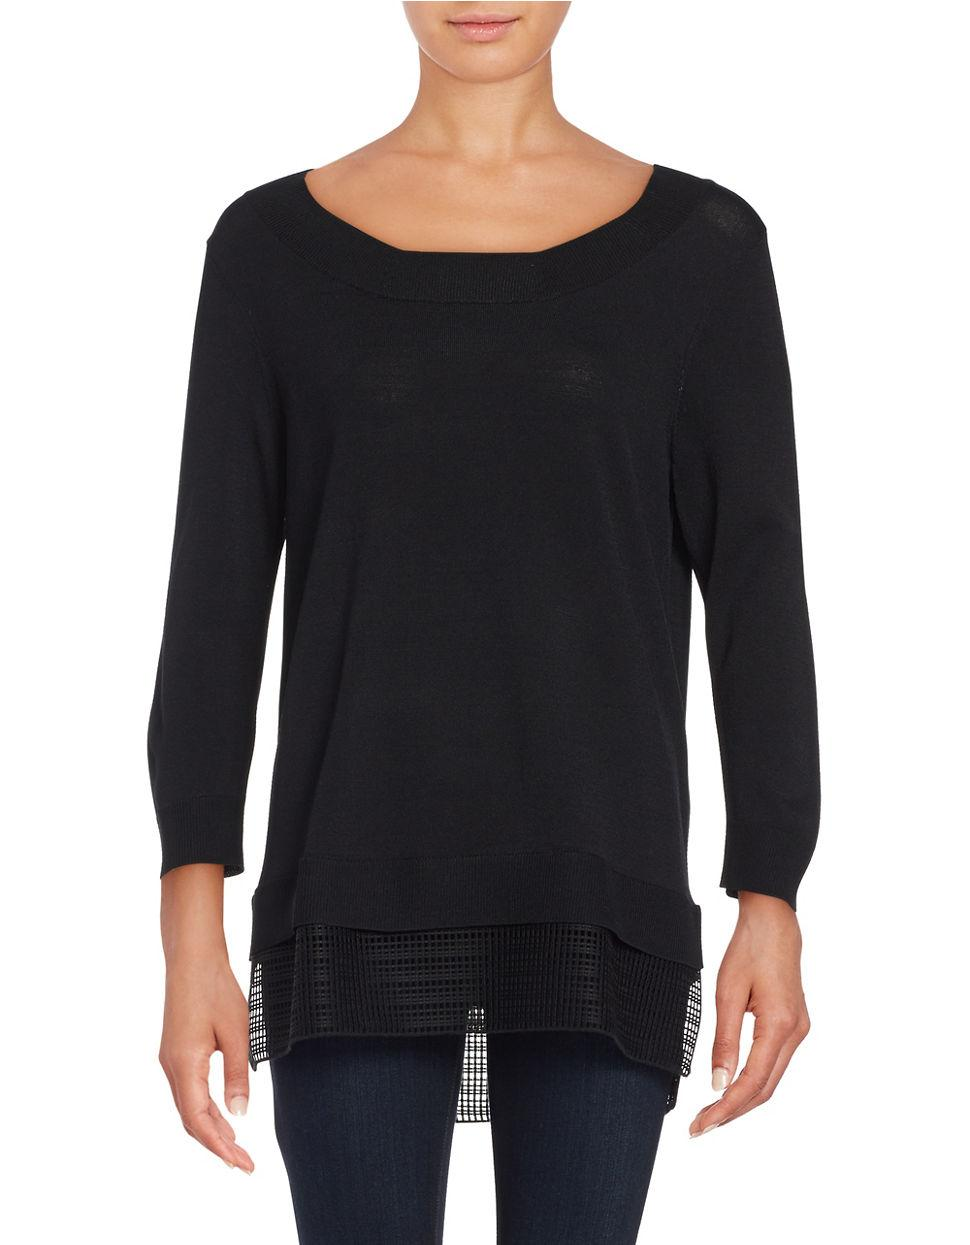 calvin klein mesh accented sweater in black lyst. Black Bedroom Furniture Sets. Home Design Ideas